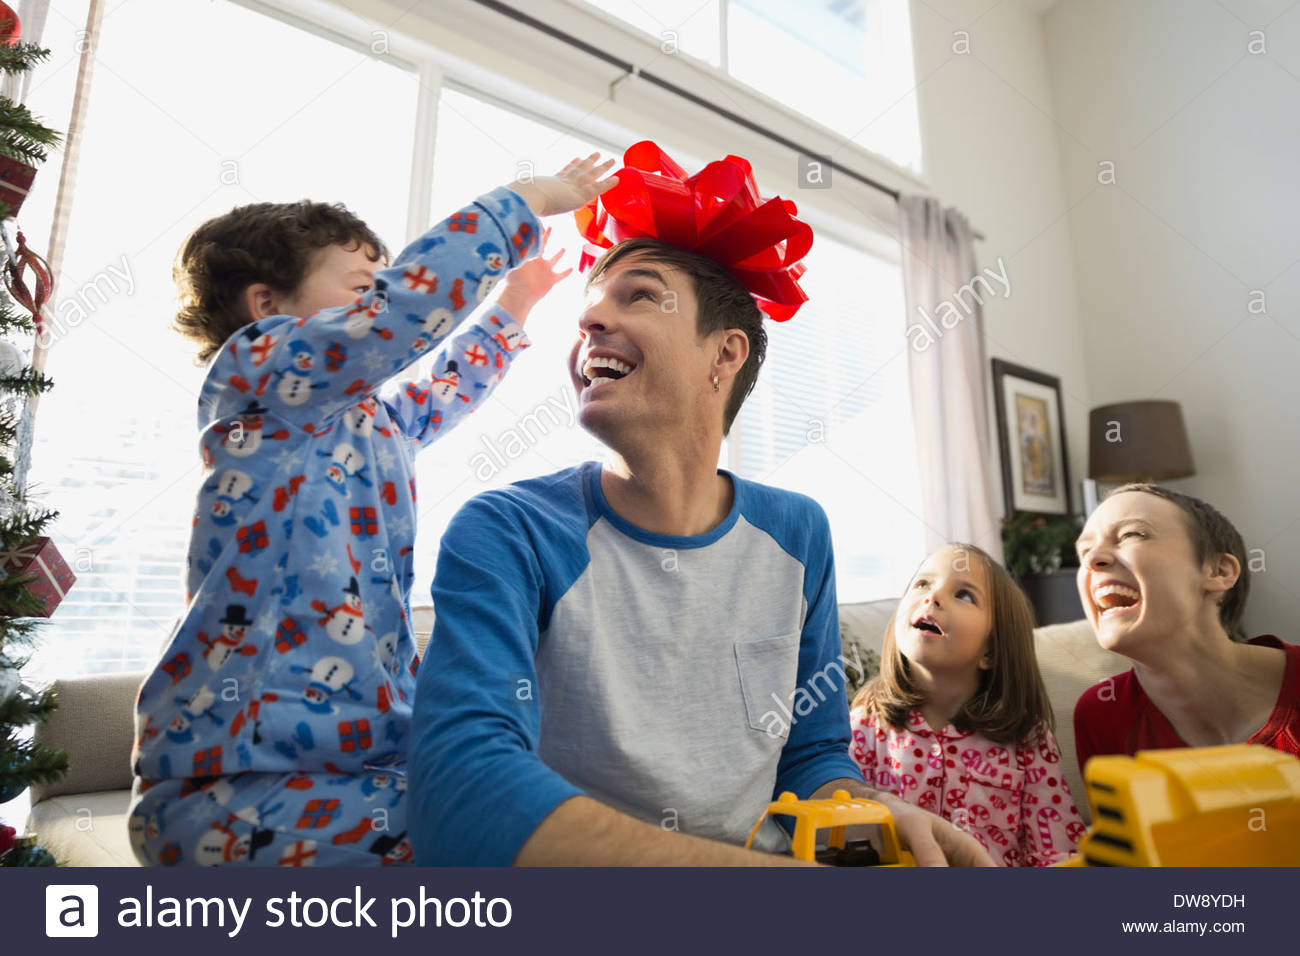 Playful family at home during Christmas - Stock Image